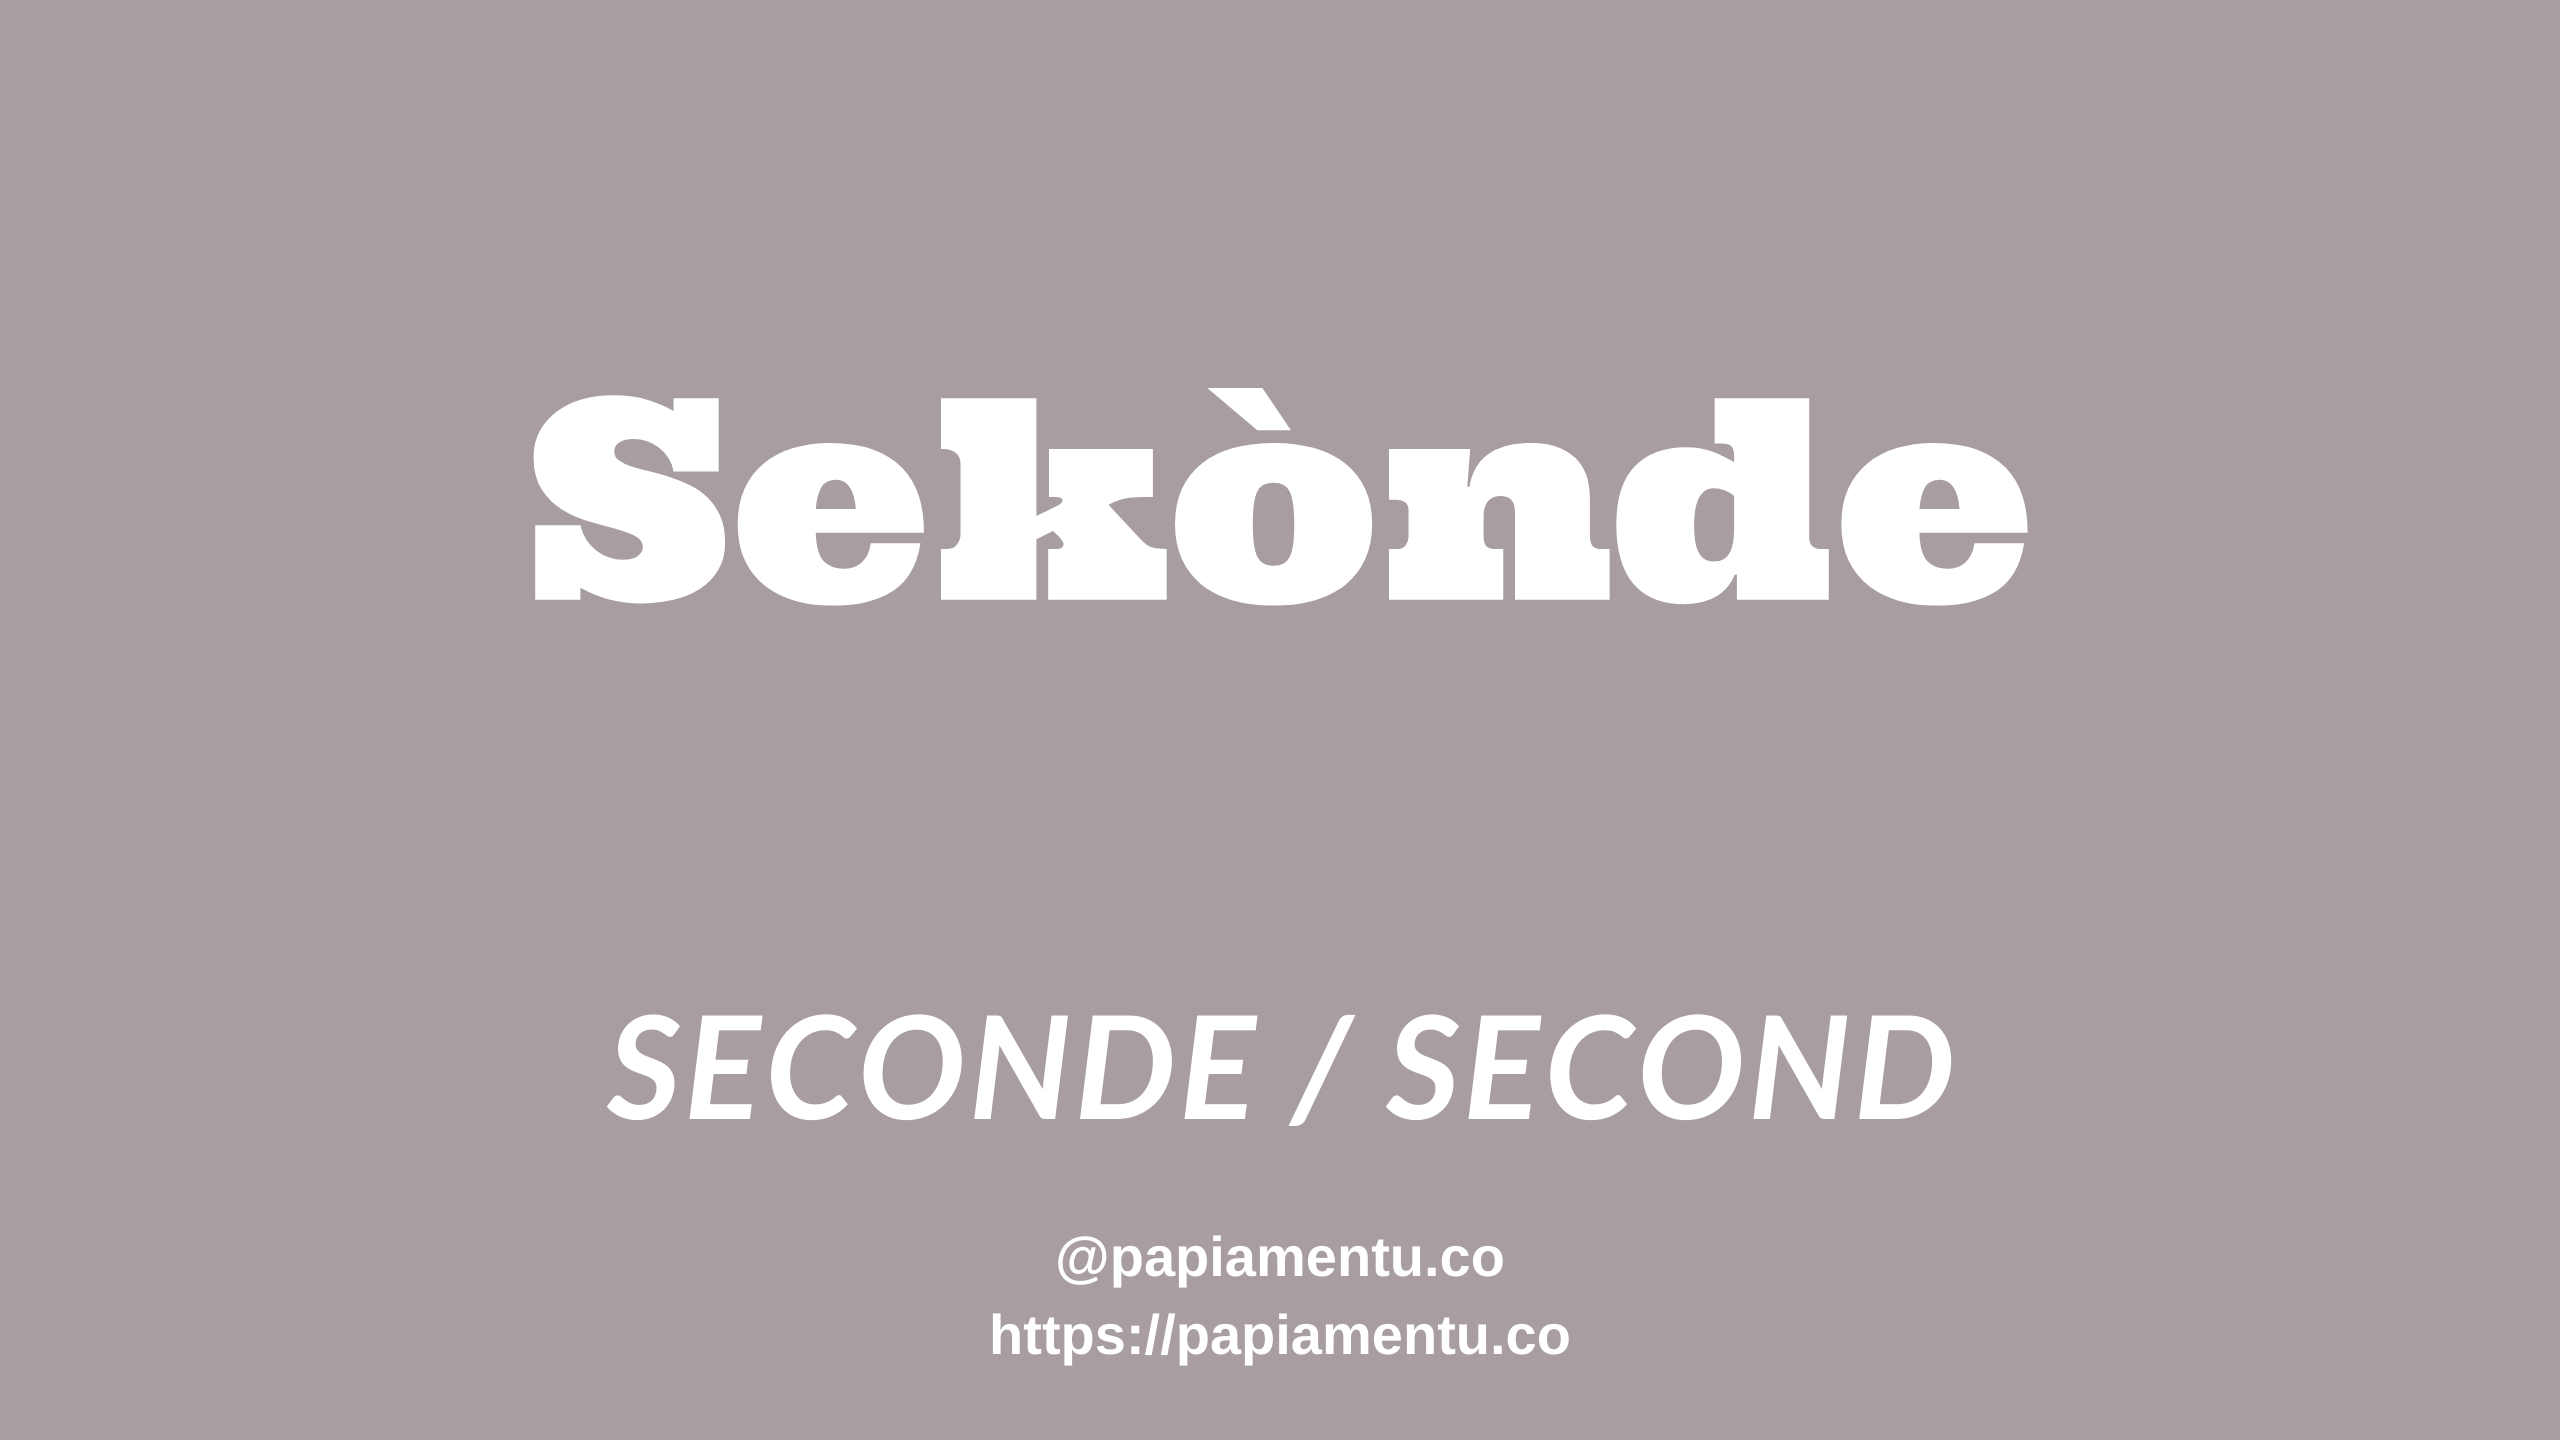 Second / Sekònde in Papiaments / Papiamento / Papiamentu